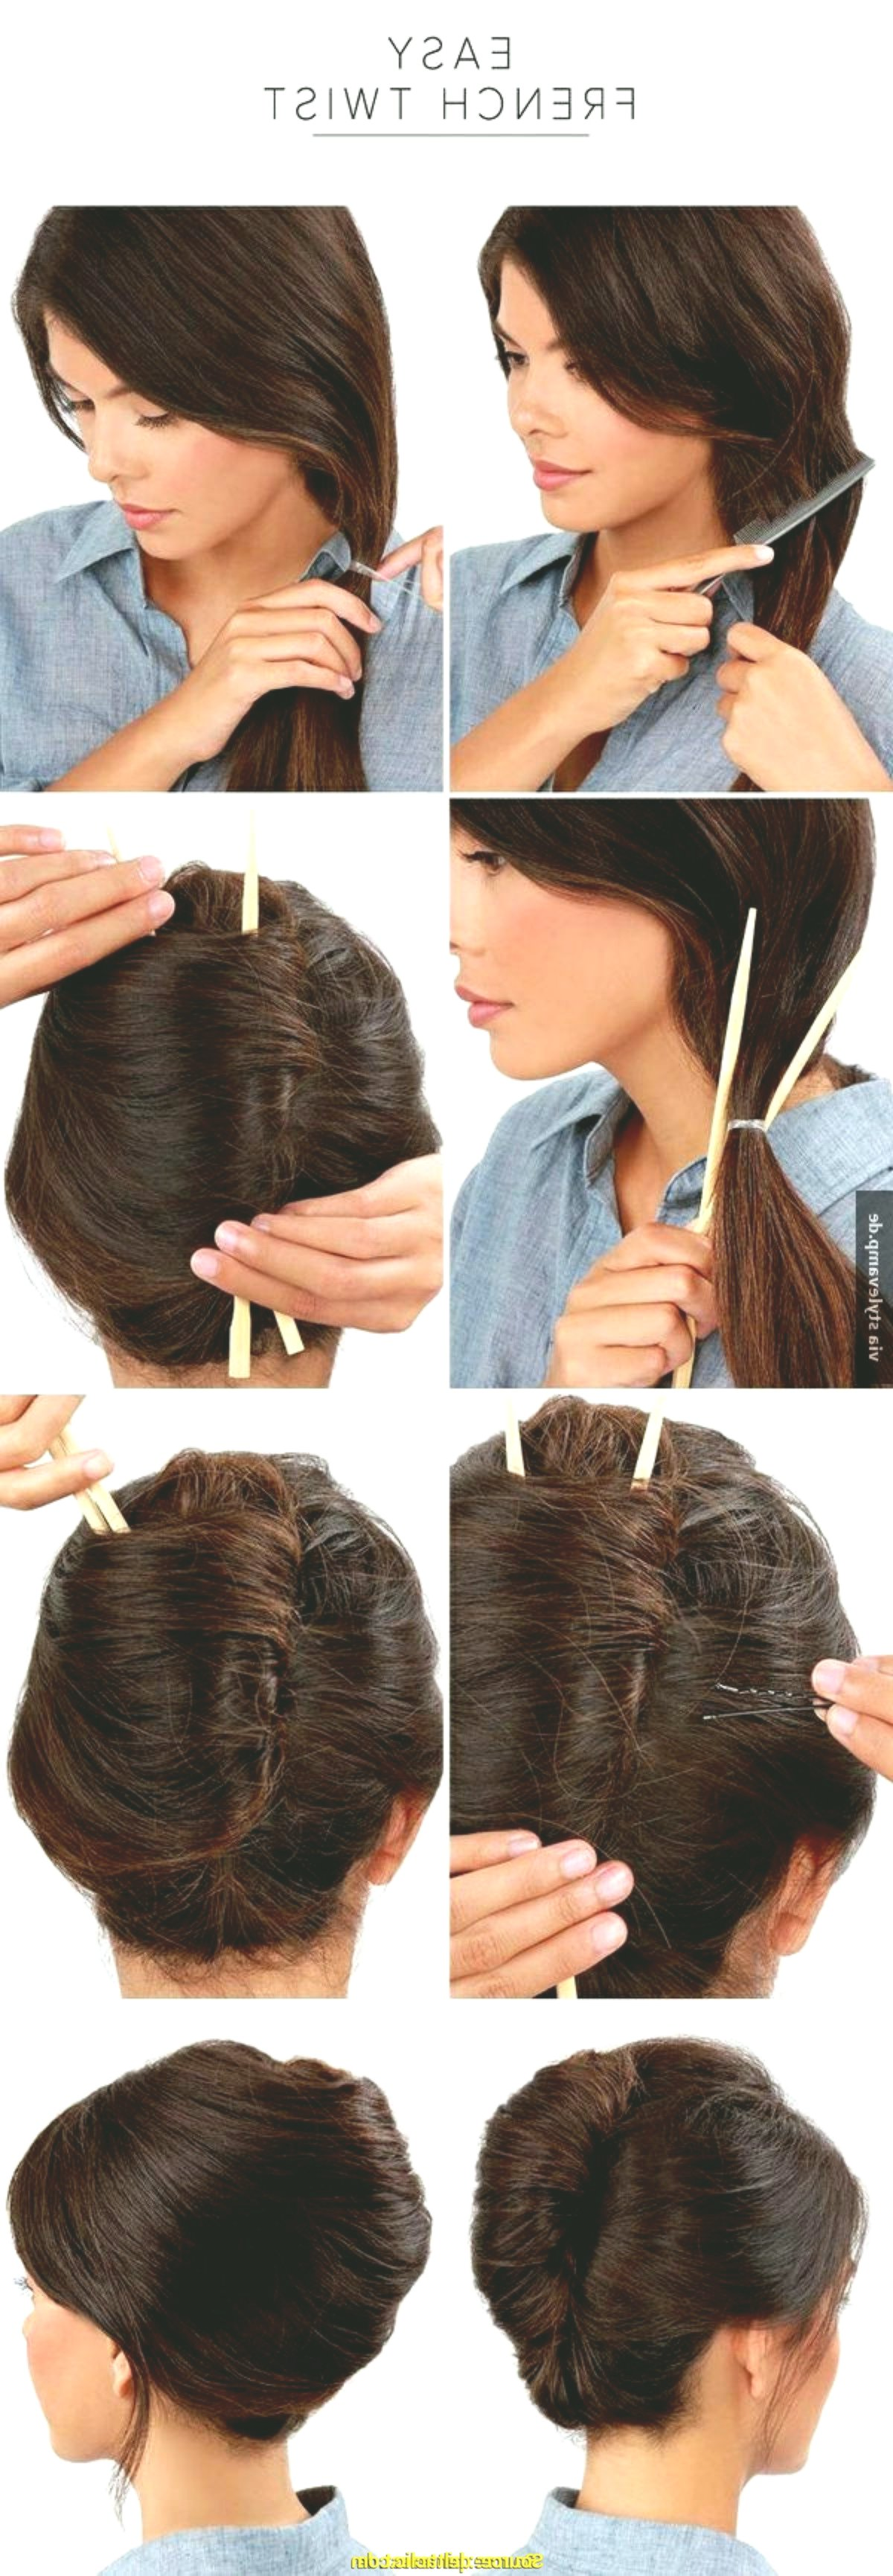 elegant hairstyles Over 50 plan-Inspirational Hairstyles Over 50 Gallery